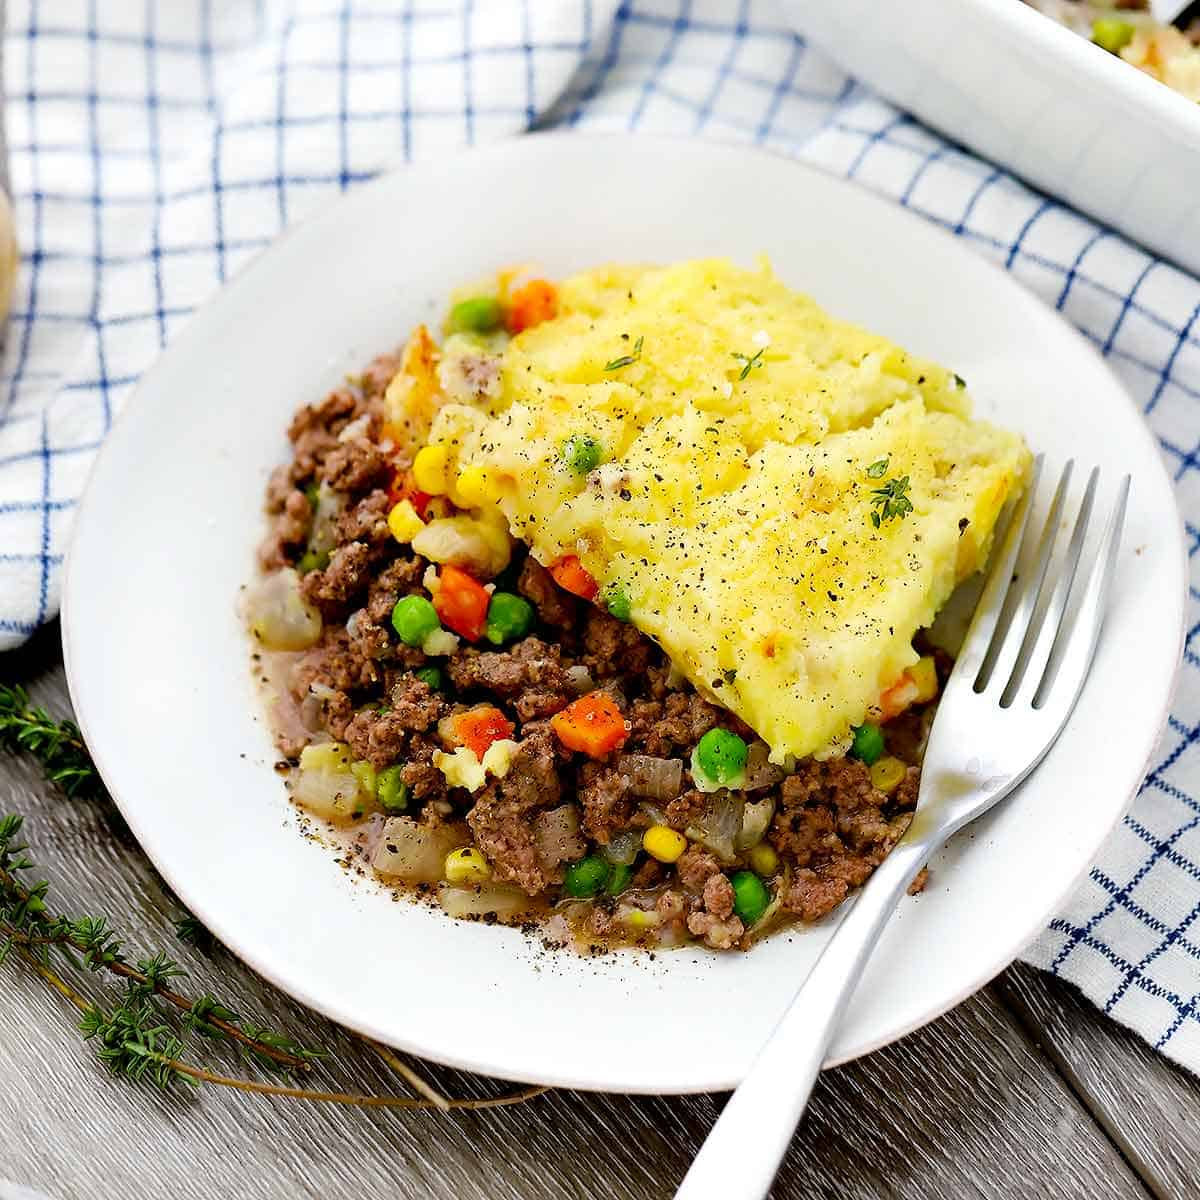 A plate of cottage pie and a fork.